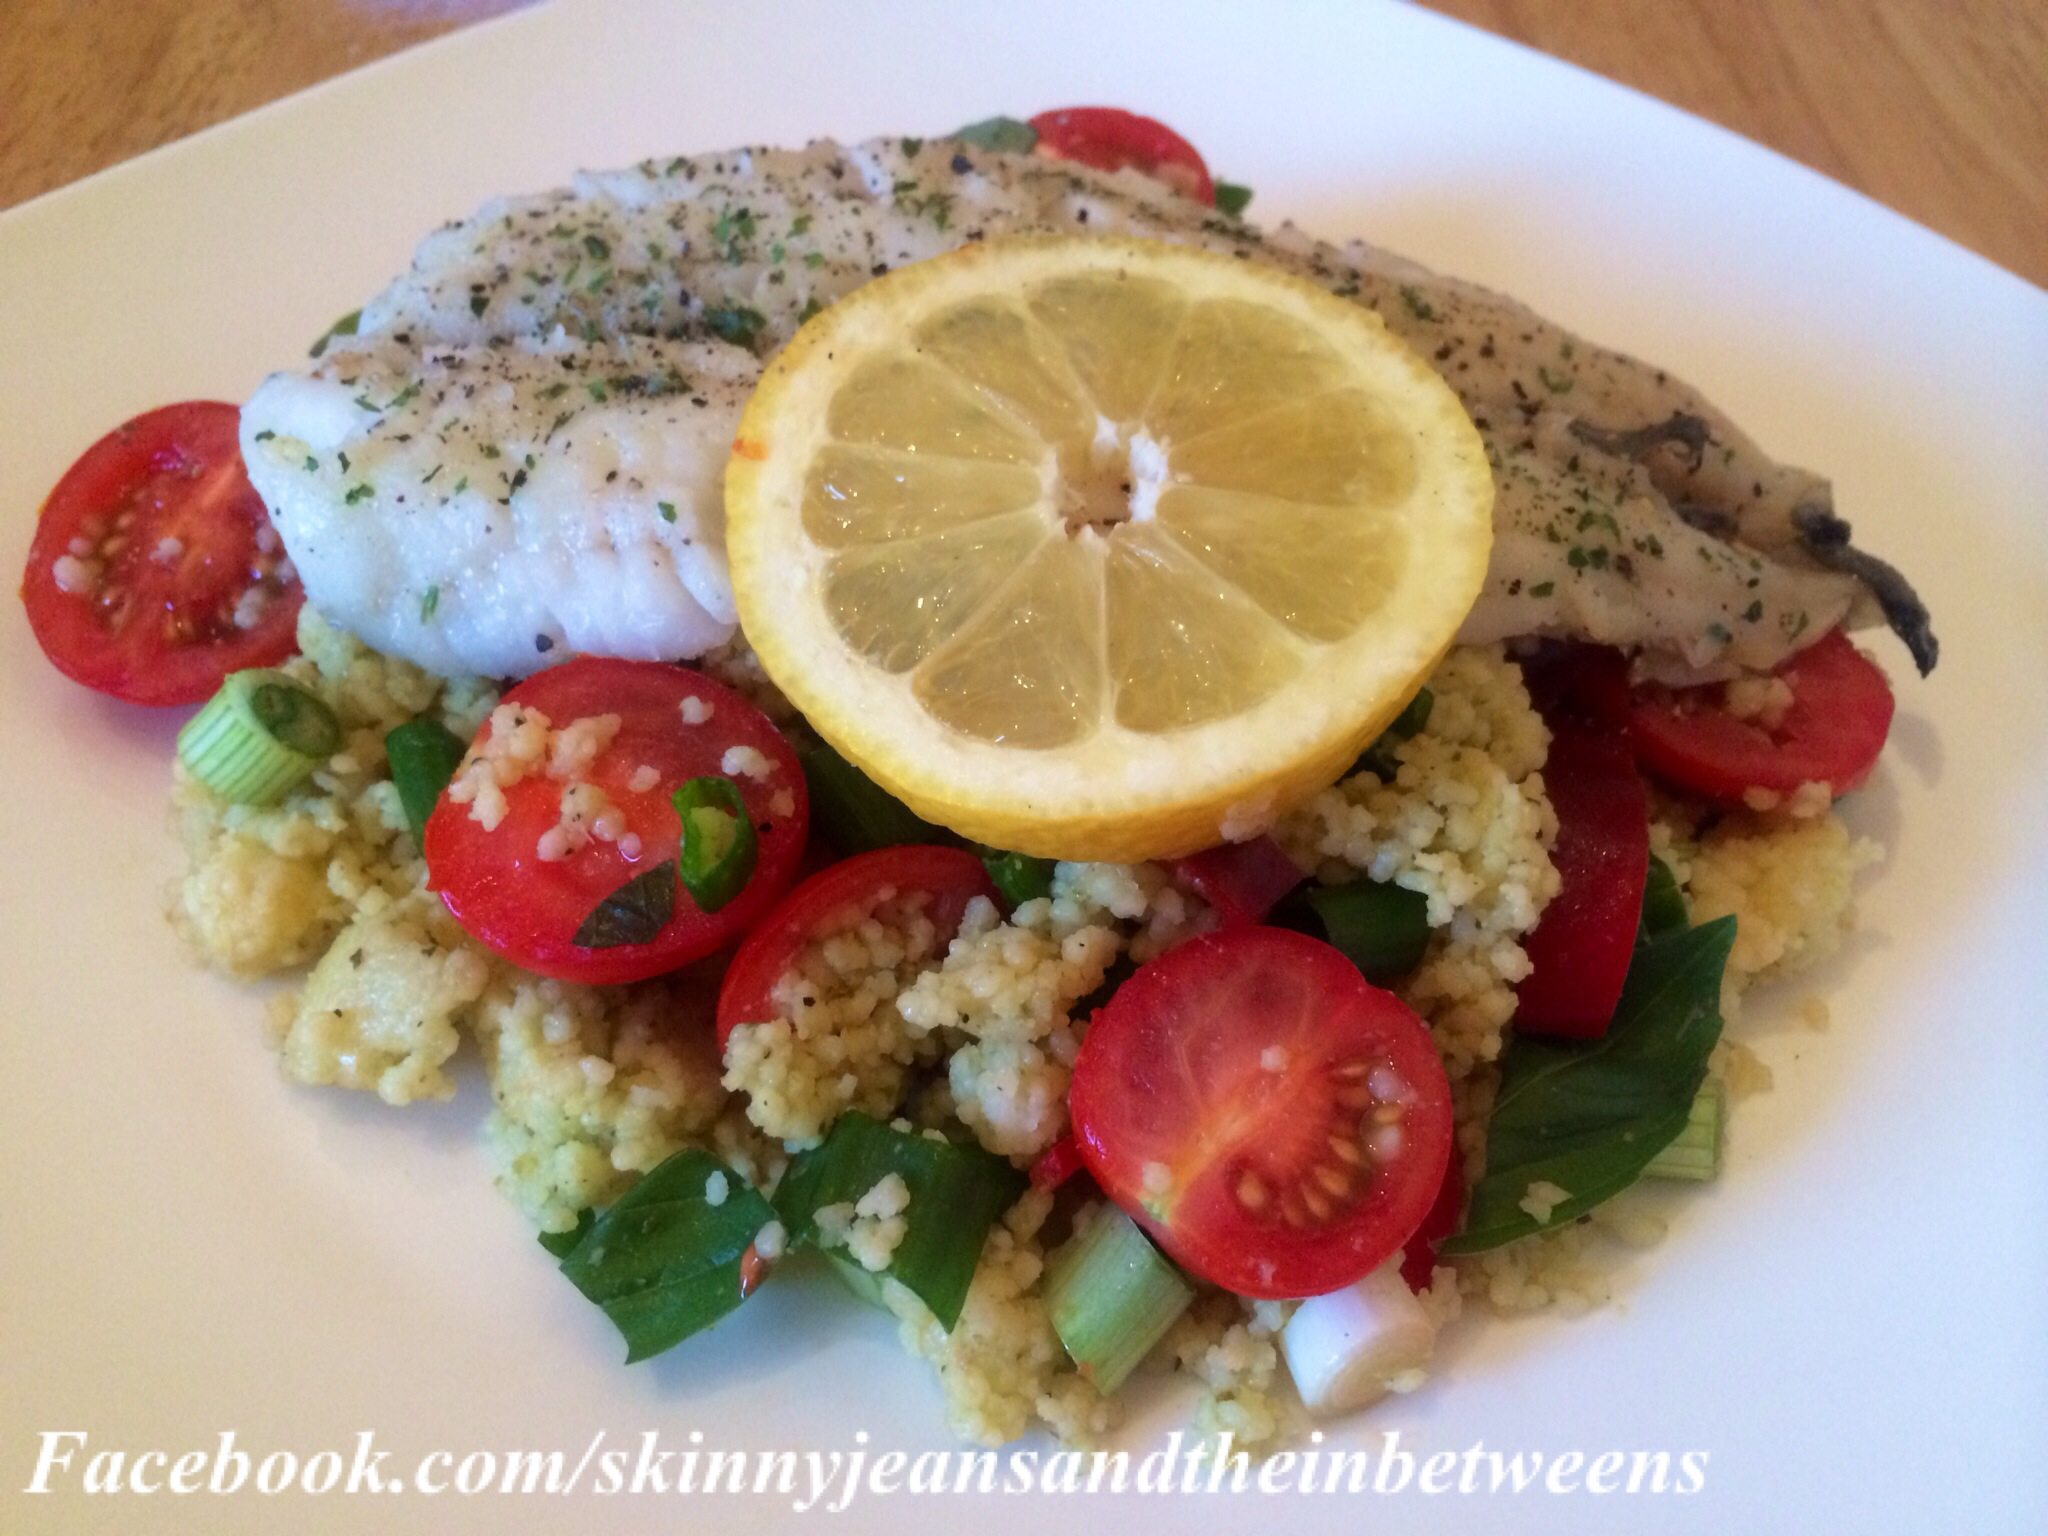 Panfried fillet of whiting with a pesto genovese couscous for Whiting fish fillet